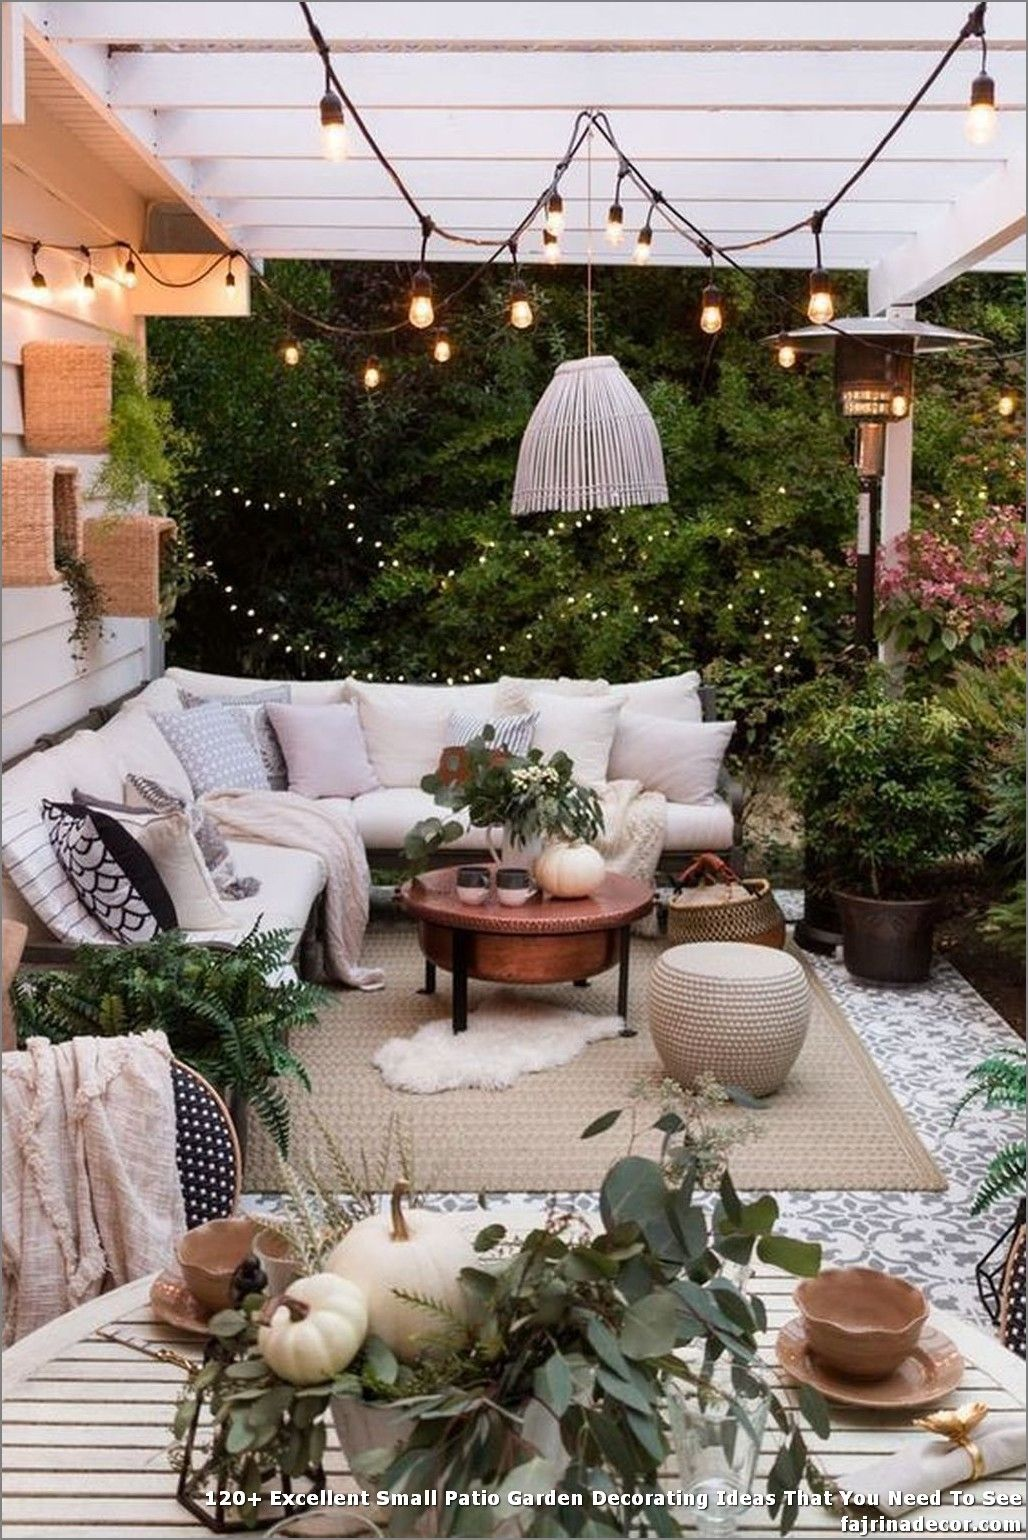 120 Excellent Small Patio Garden Decorating Ideas That You Need